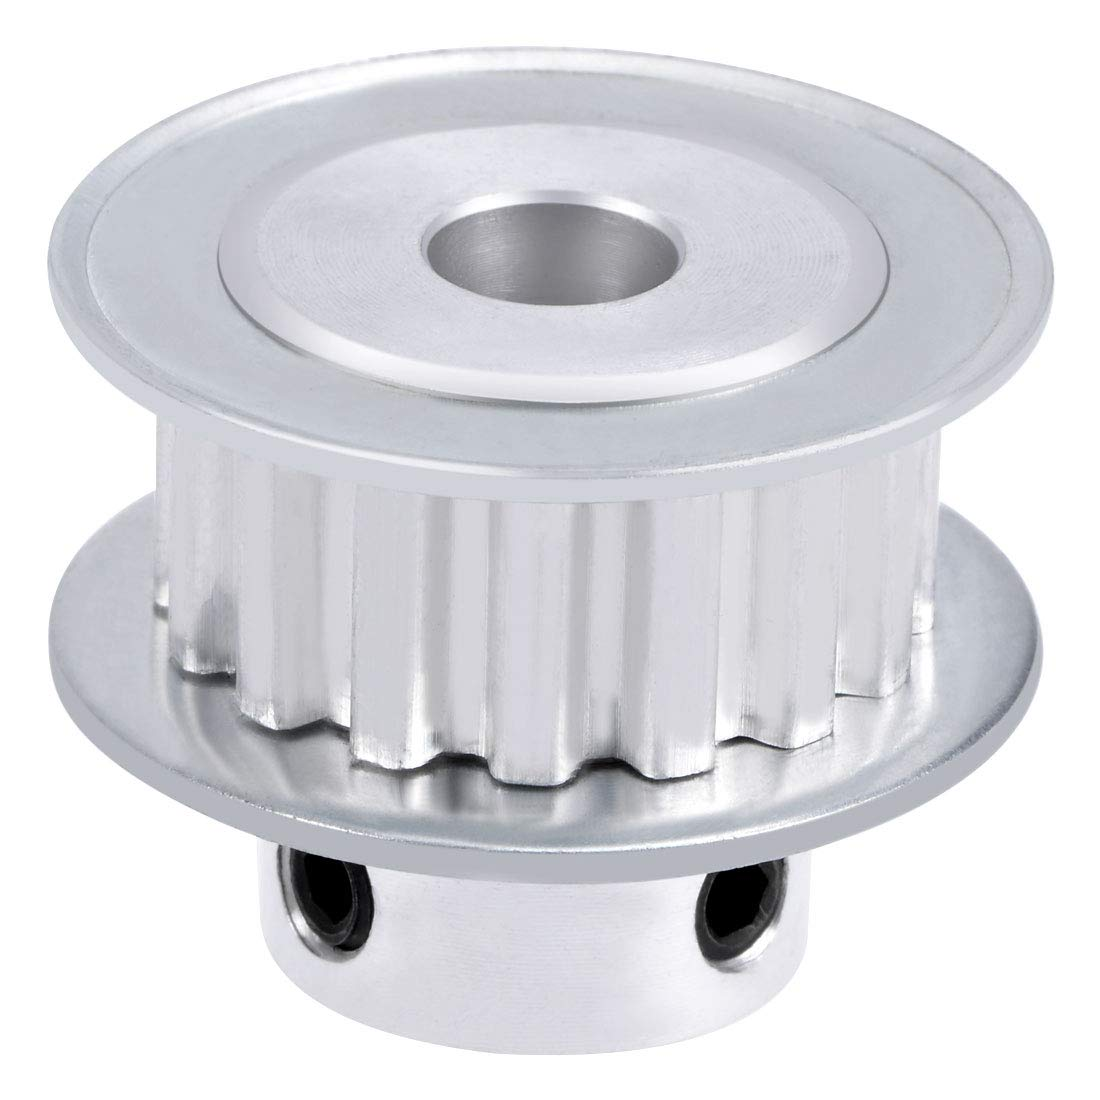 Uxcell Aluminum Xl 30 Teeth 8mm Bore Timing Belt Pulley Flange Pulleys Synchronous Wheel For 11mm